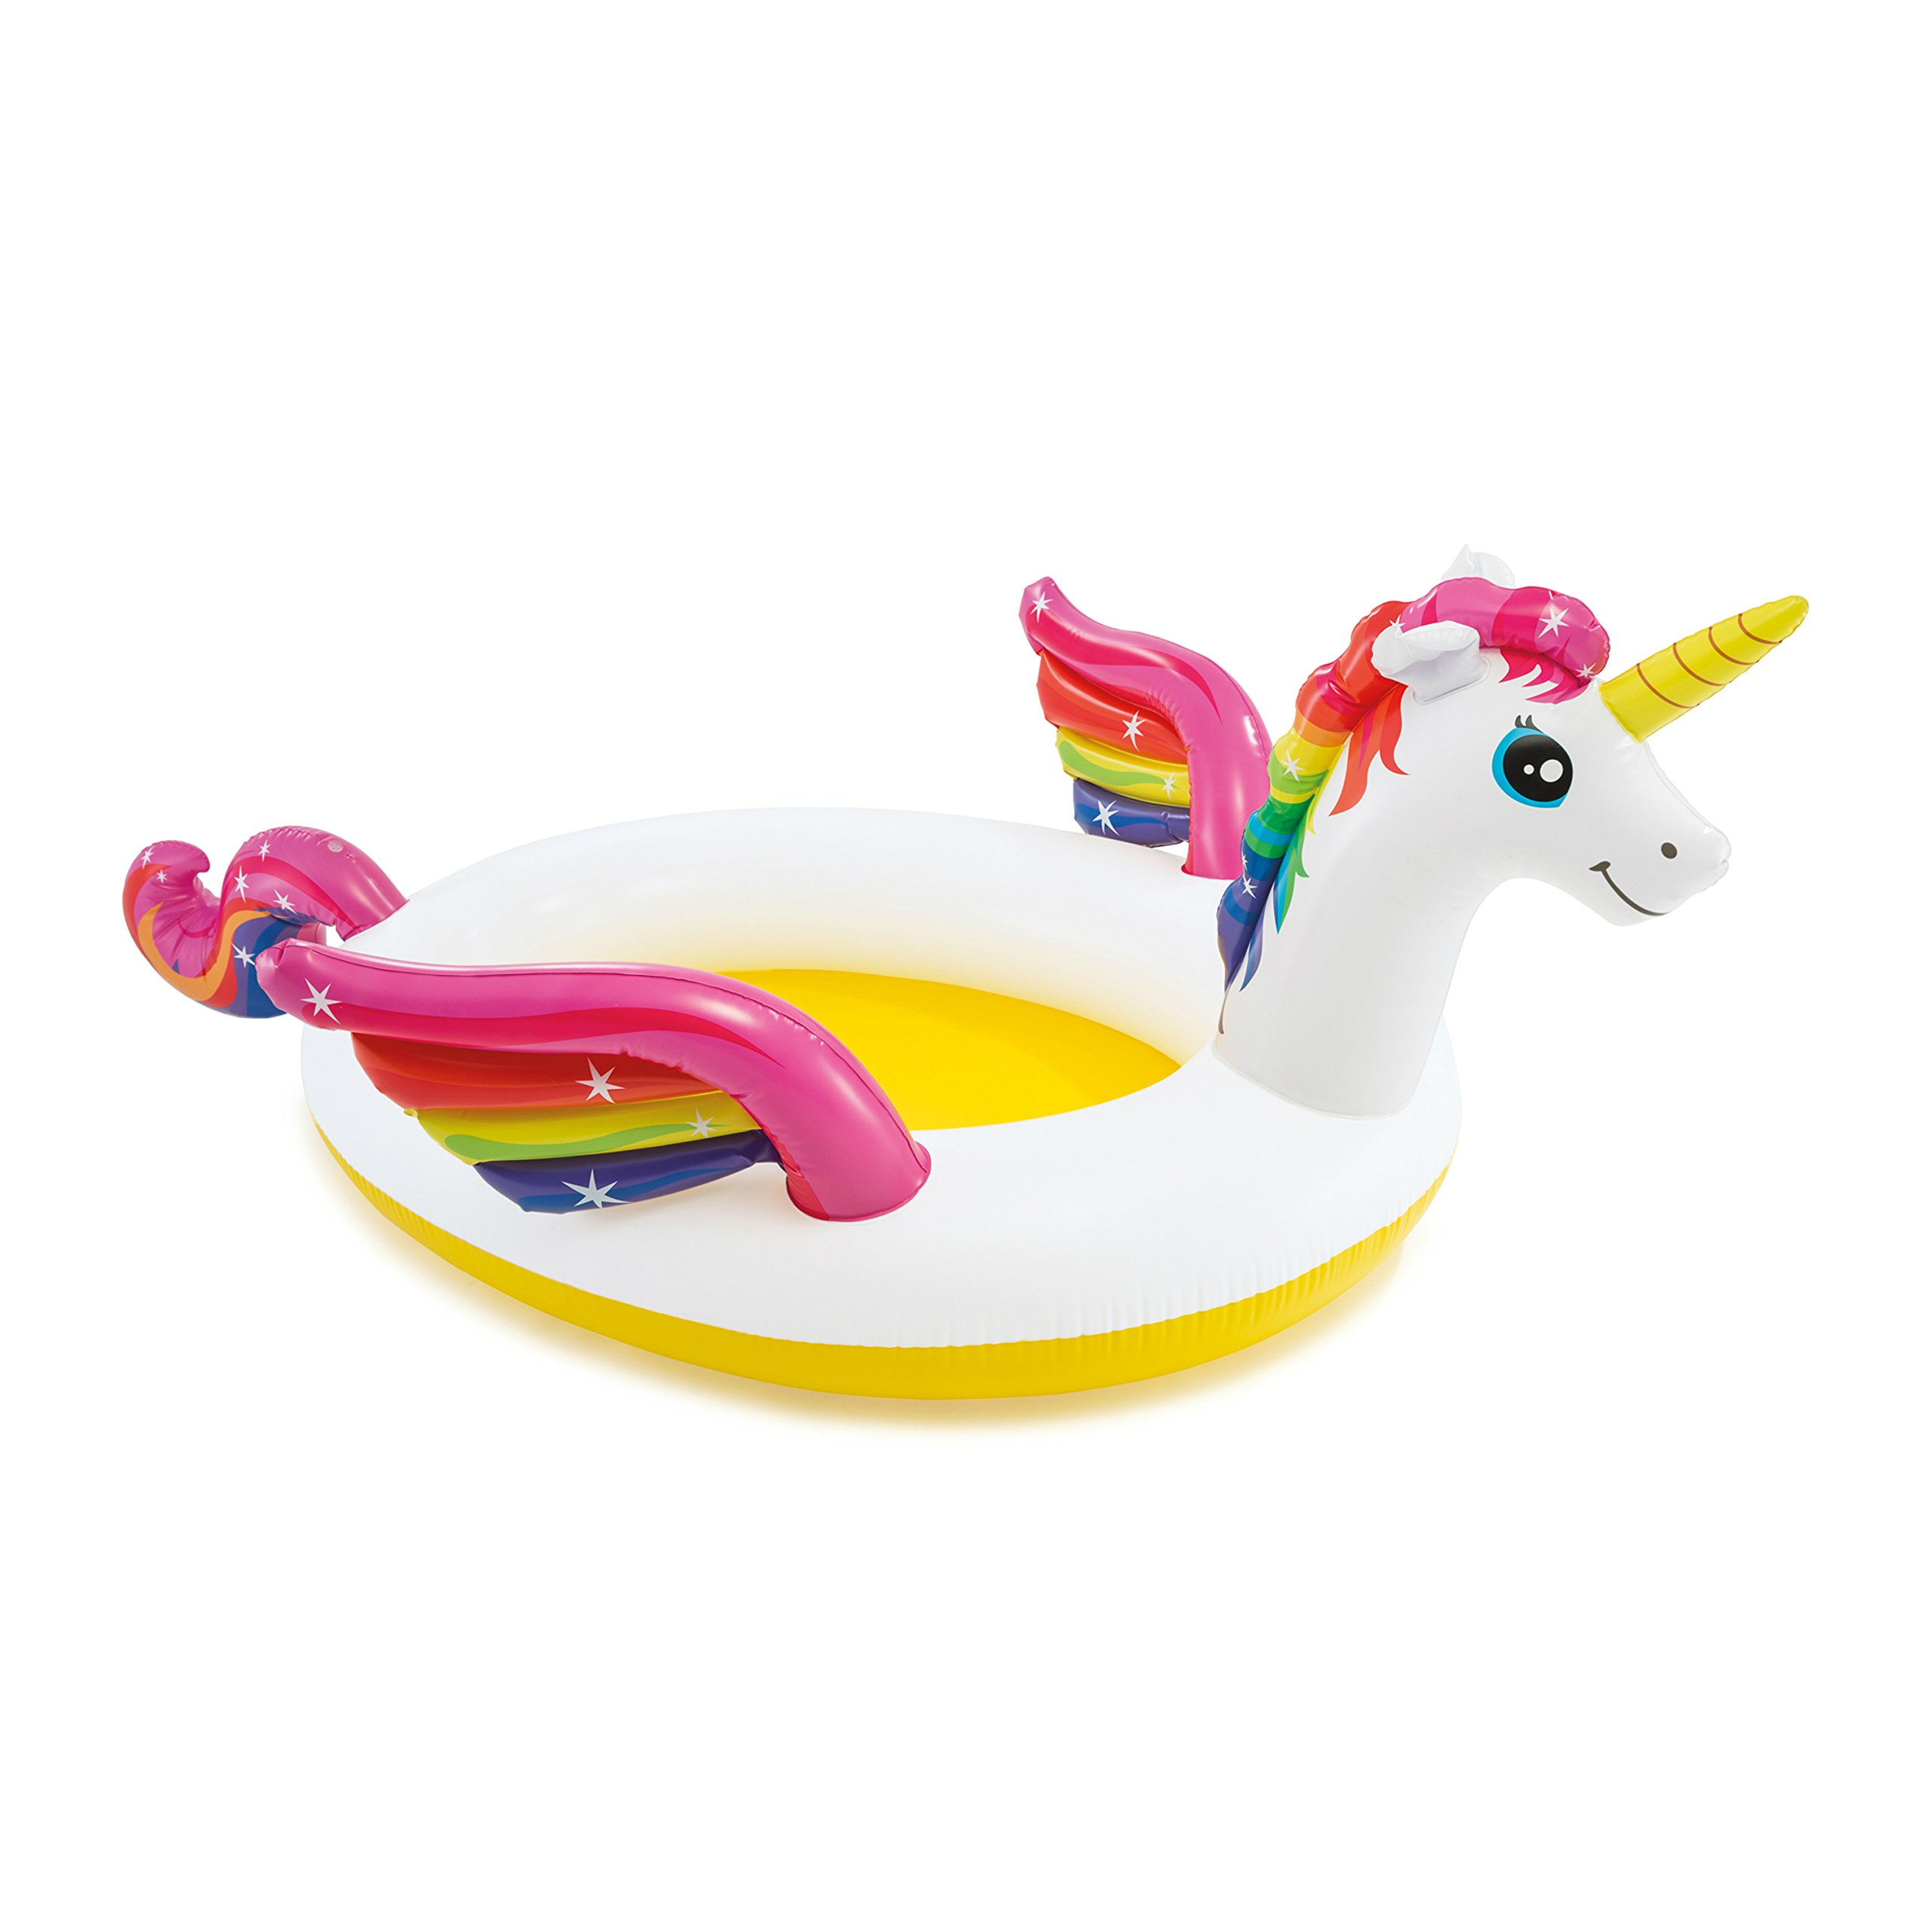 Intex Mystic Unicorn Inflatable Spray Pool, 107'' X 76'' X 41'', for Ages 2+